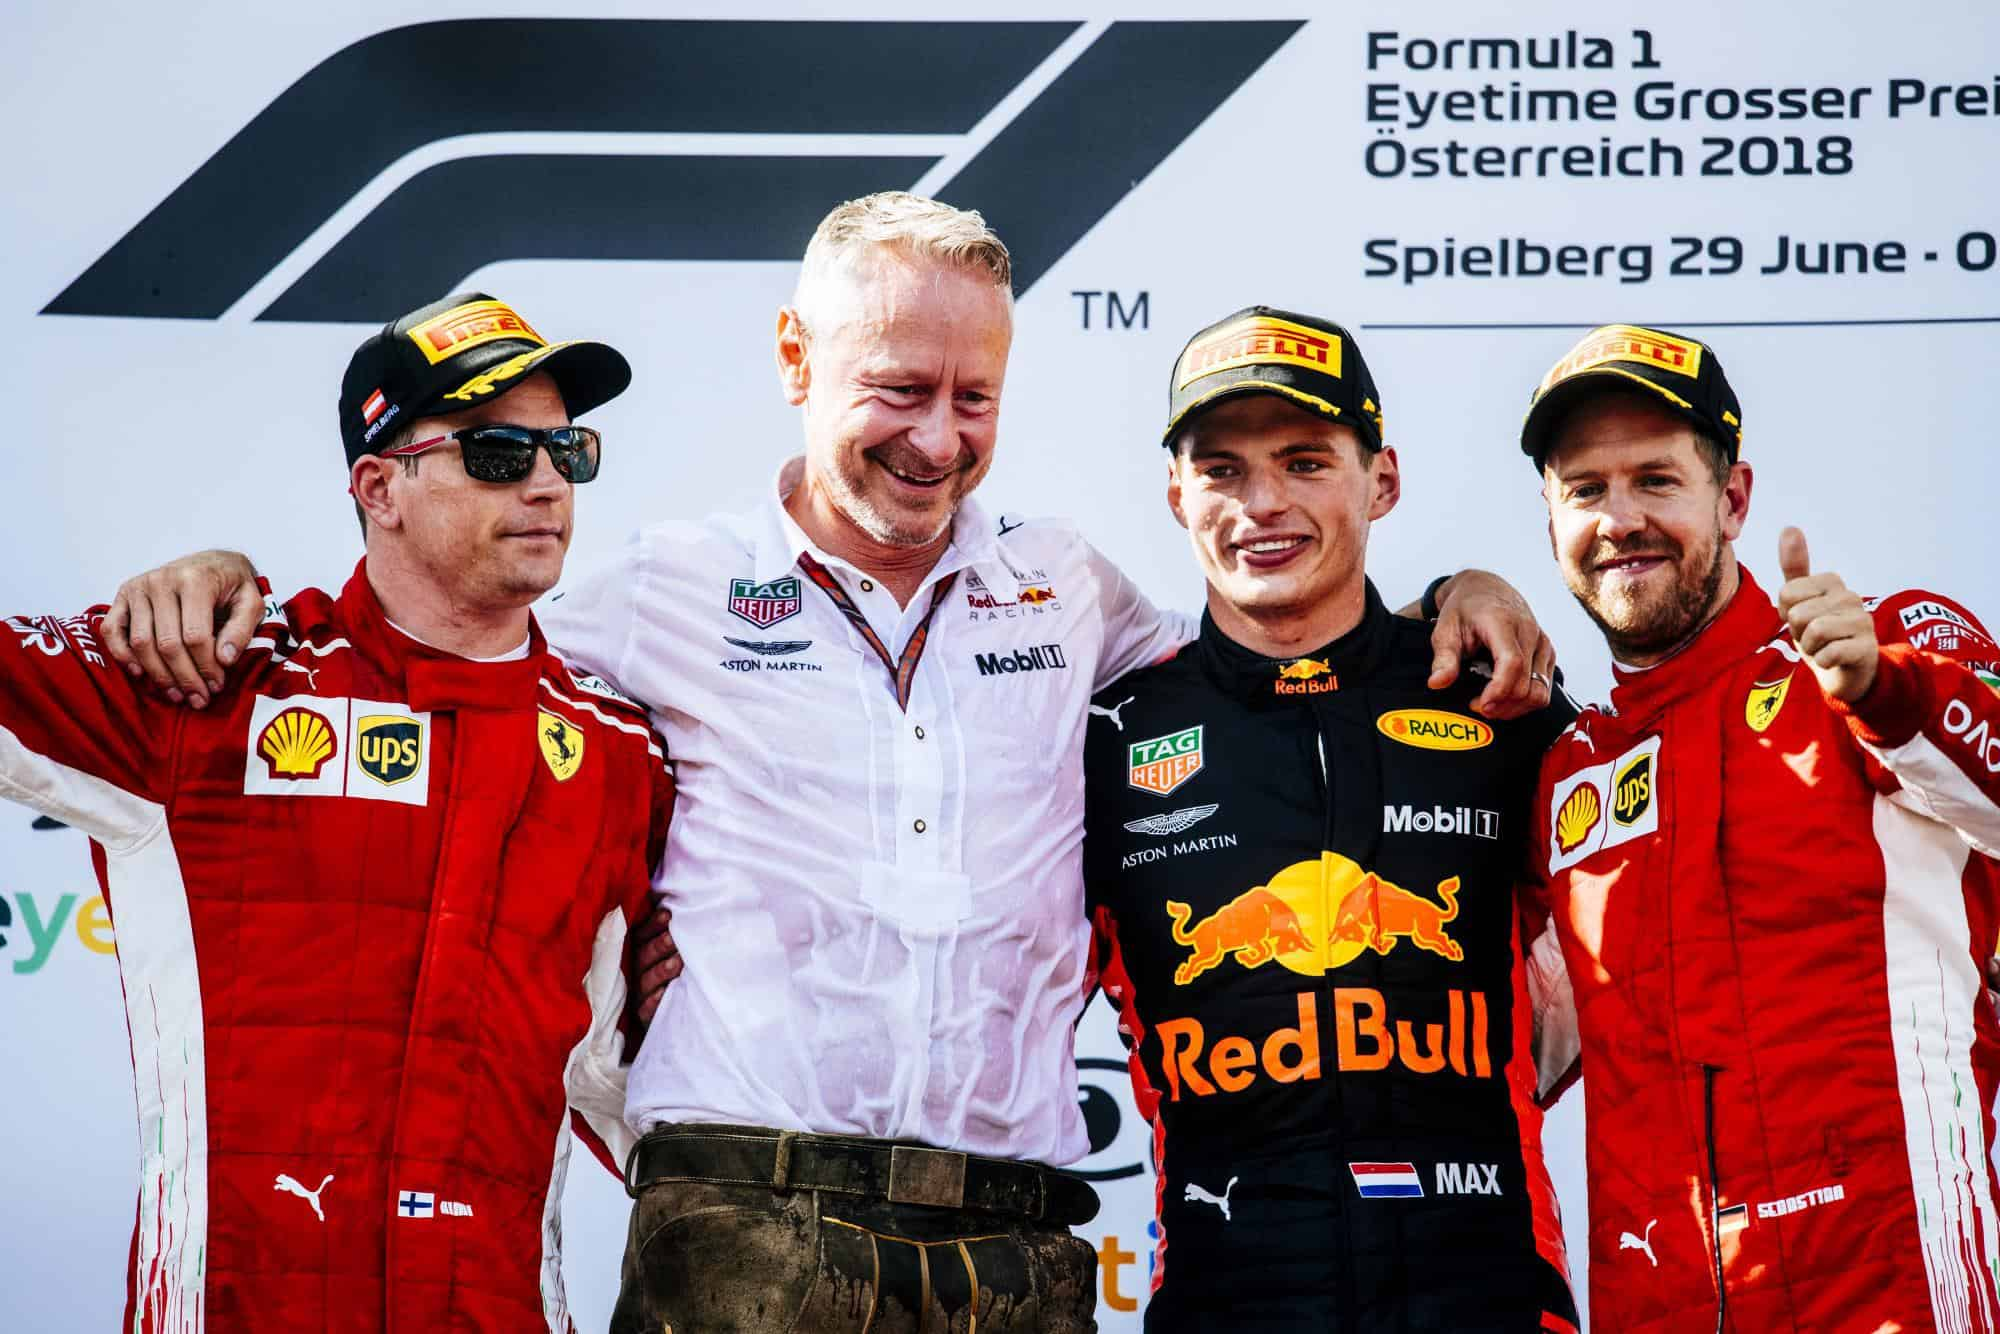 Austrian GP F1 2018 podium Photo Ferrari